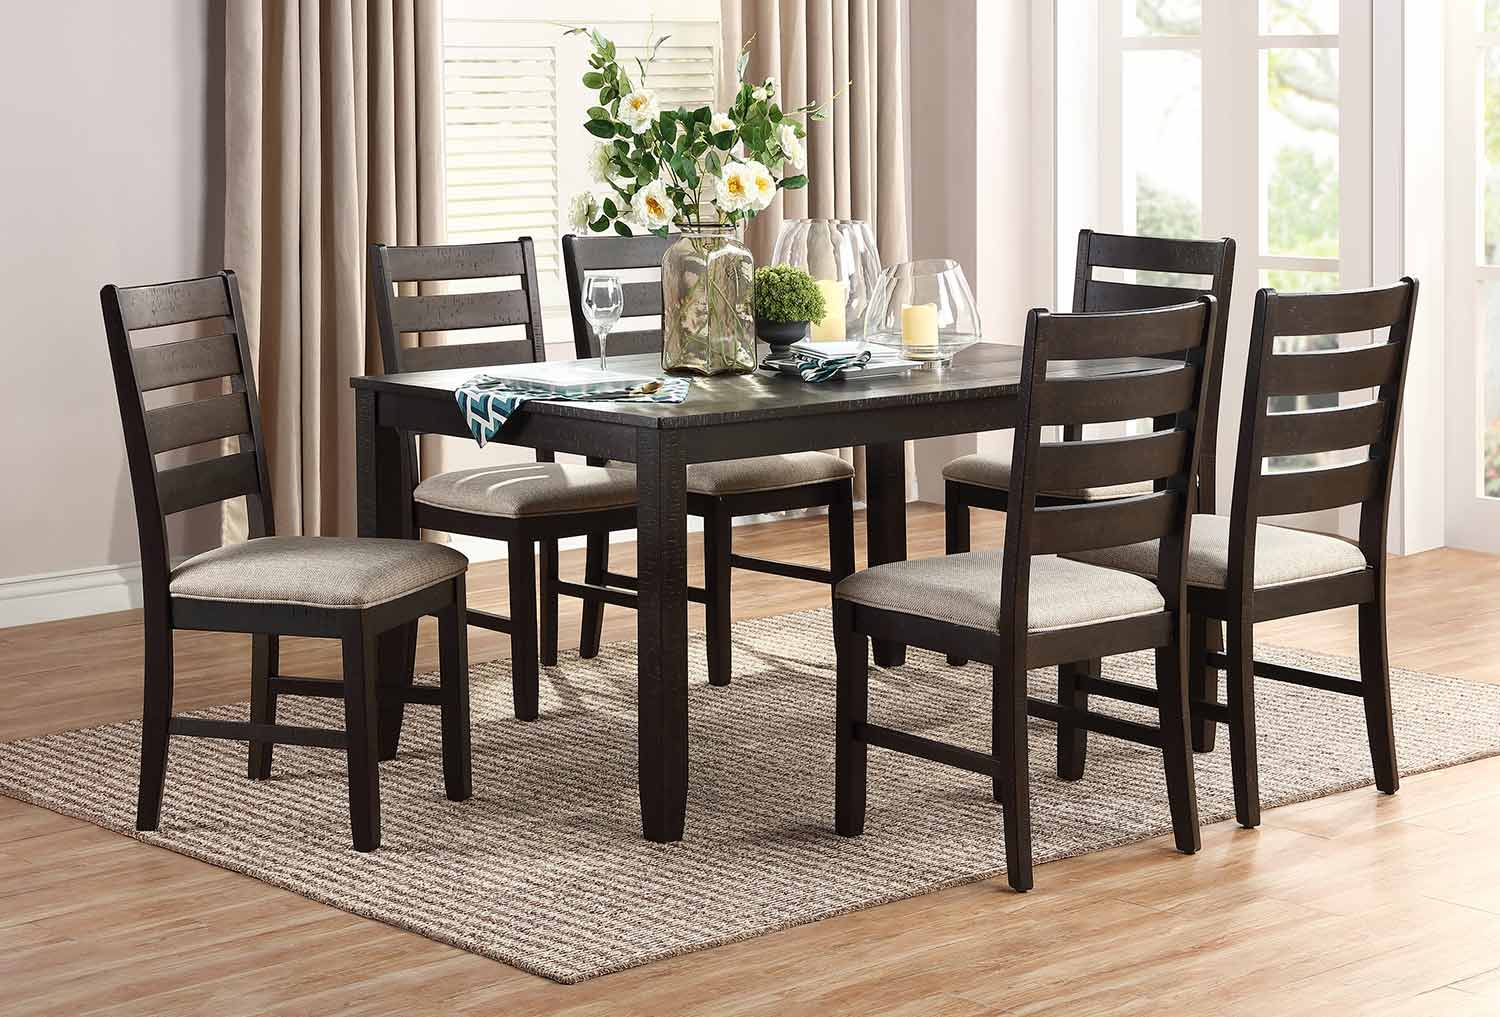 Homelegance Blair 7-Piece Pack Dinette Set